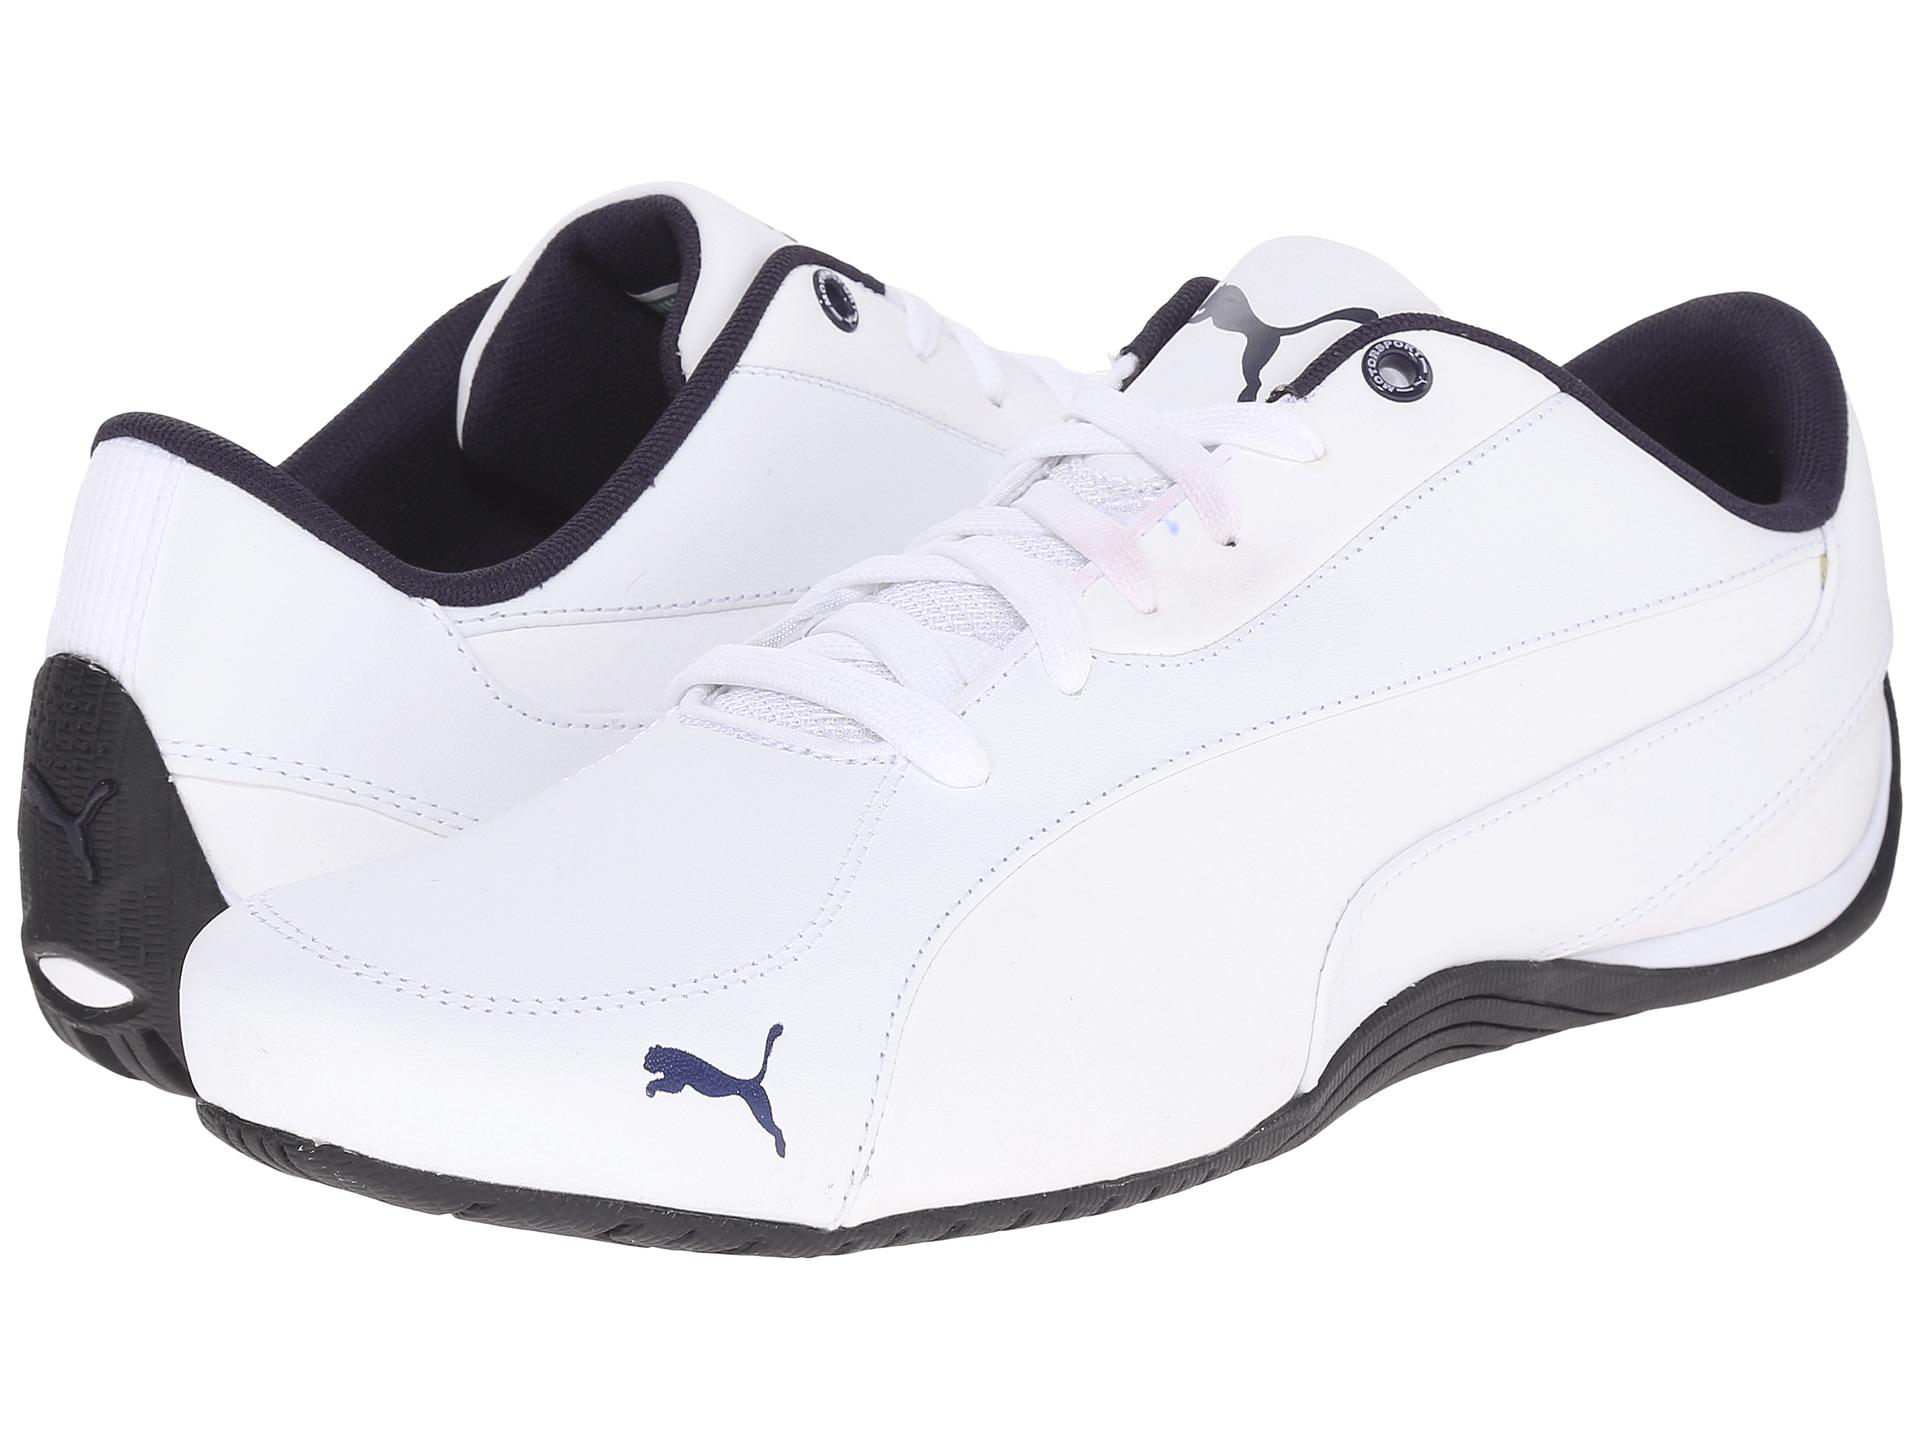 2127cfe09e21 Lyst - PUMA Drift Cat 5 Leather in White for Men